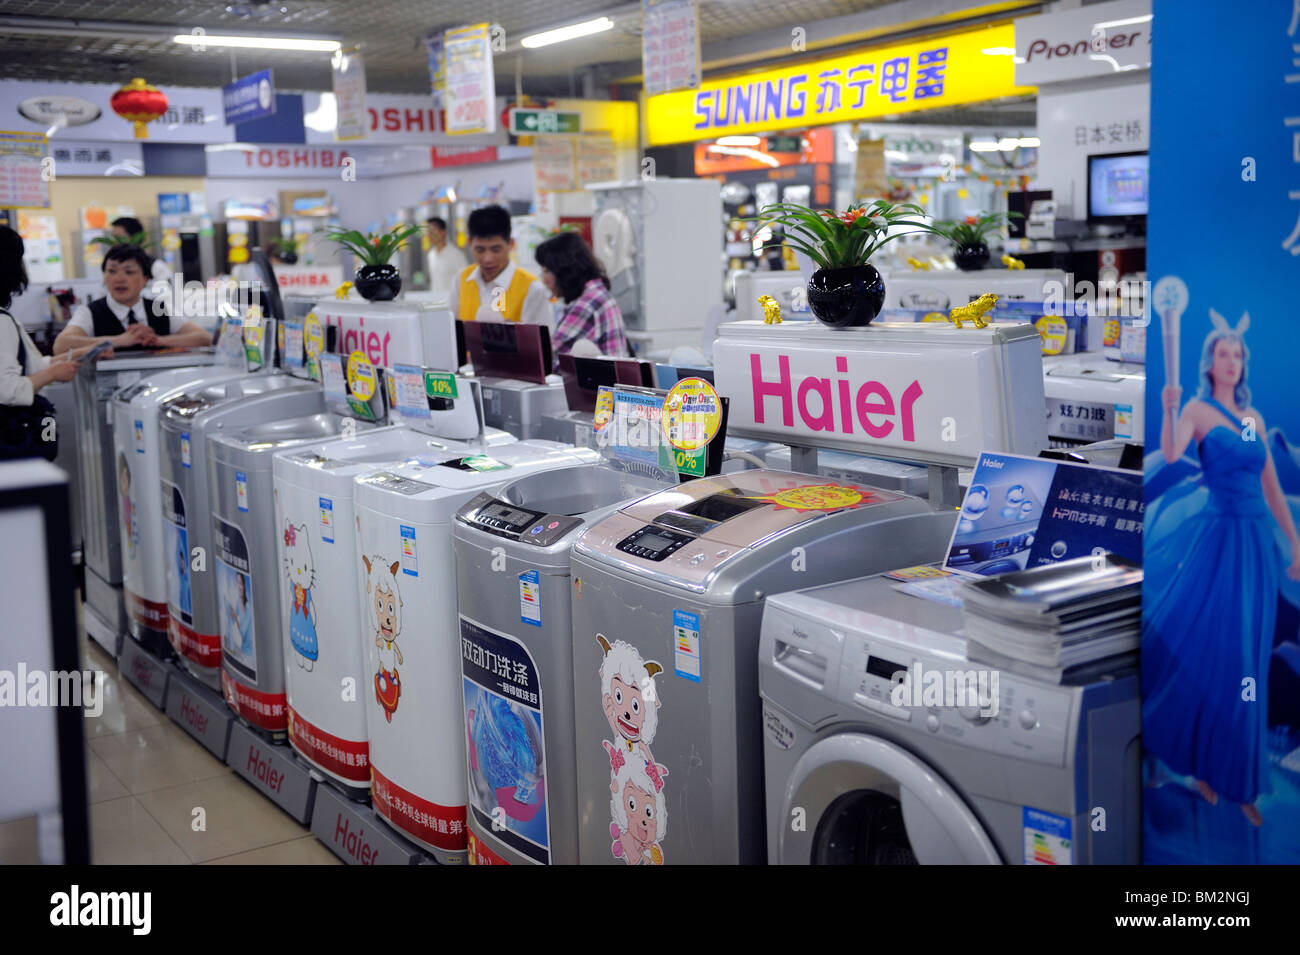 Washing machines of Qingdao Haier Co. Ltd. at Suning Appliance Co. store in Beijing, China. 16-May-2010 - Stock Image